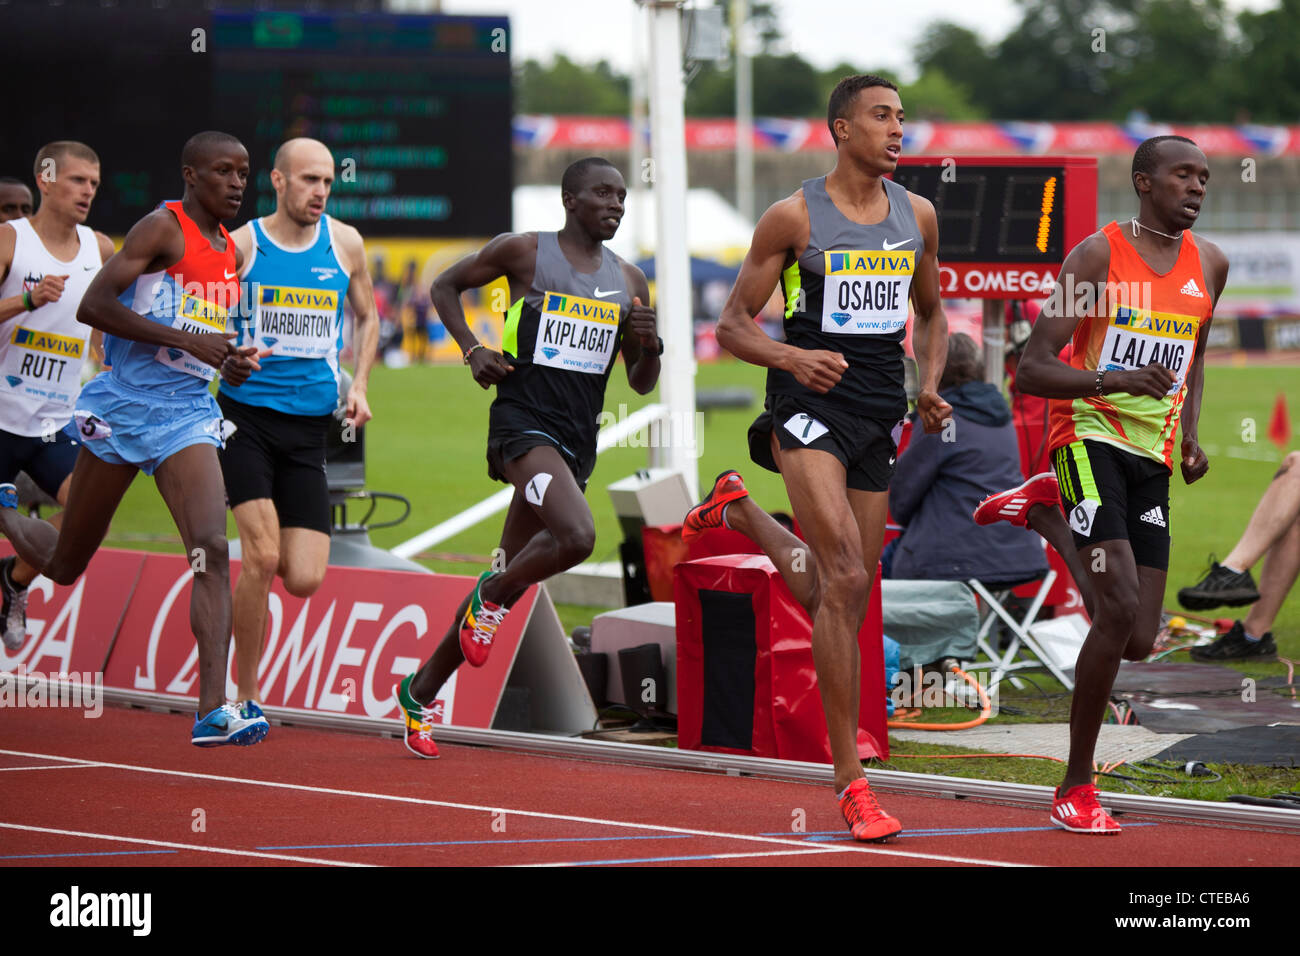 Mens 800m, Aviva London Grand Prix, Crystal Palace, London 2012 - Stock Image